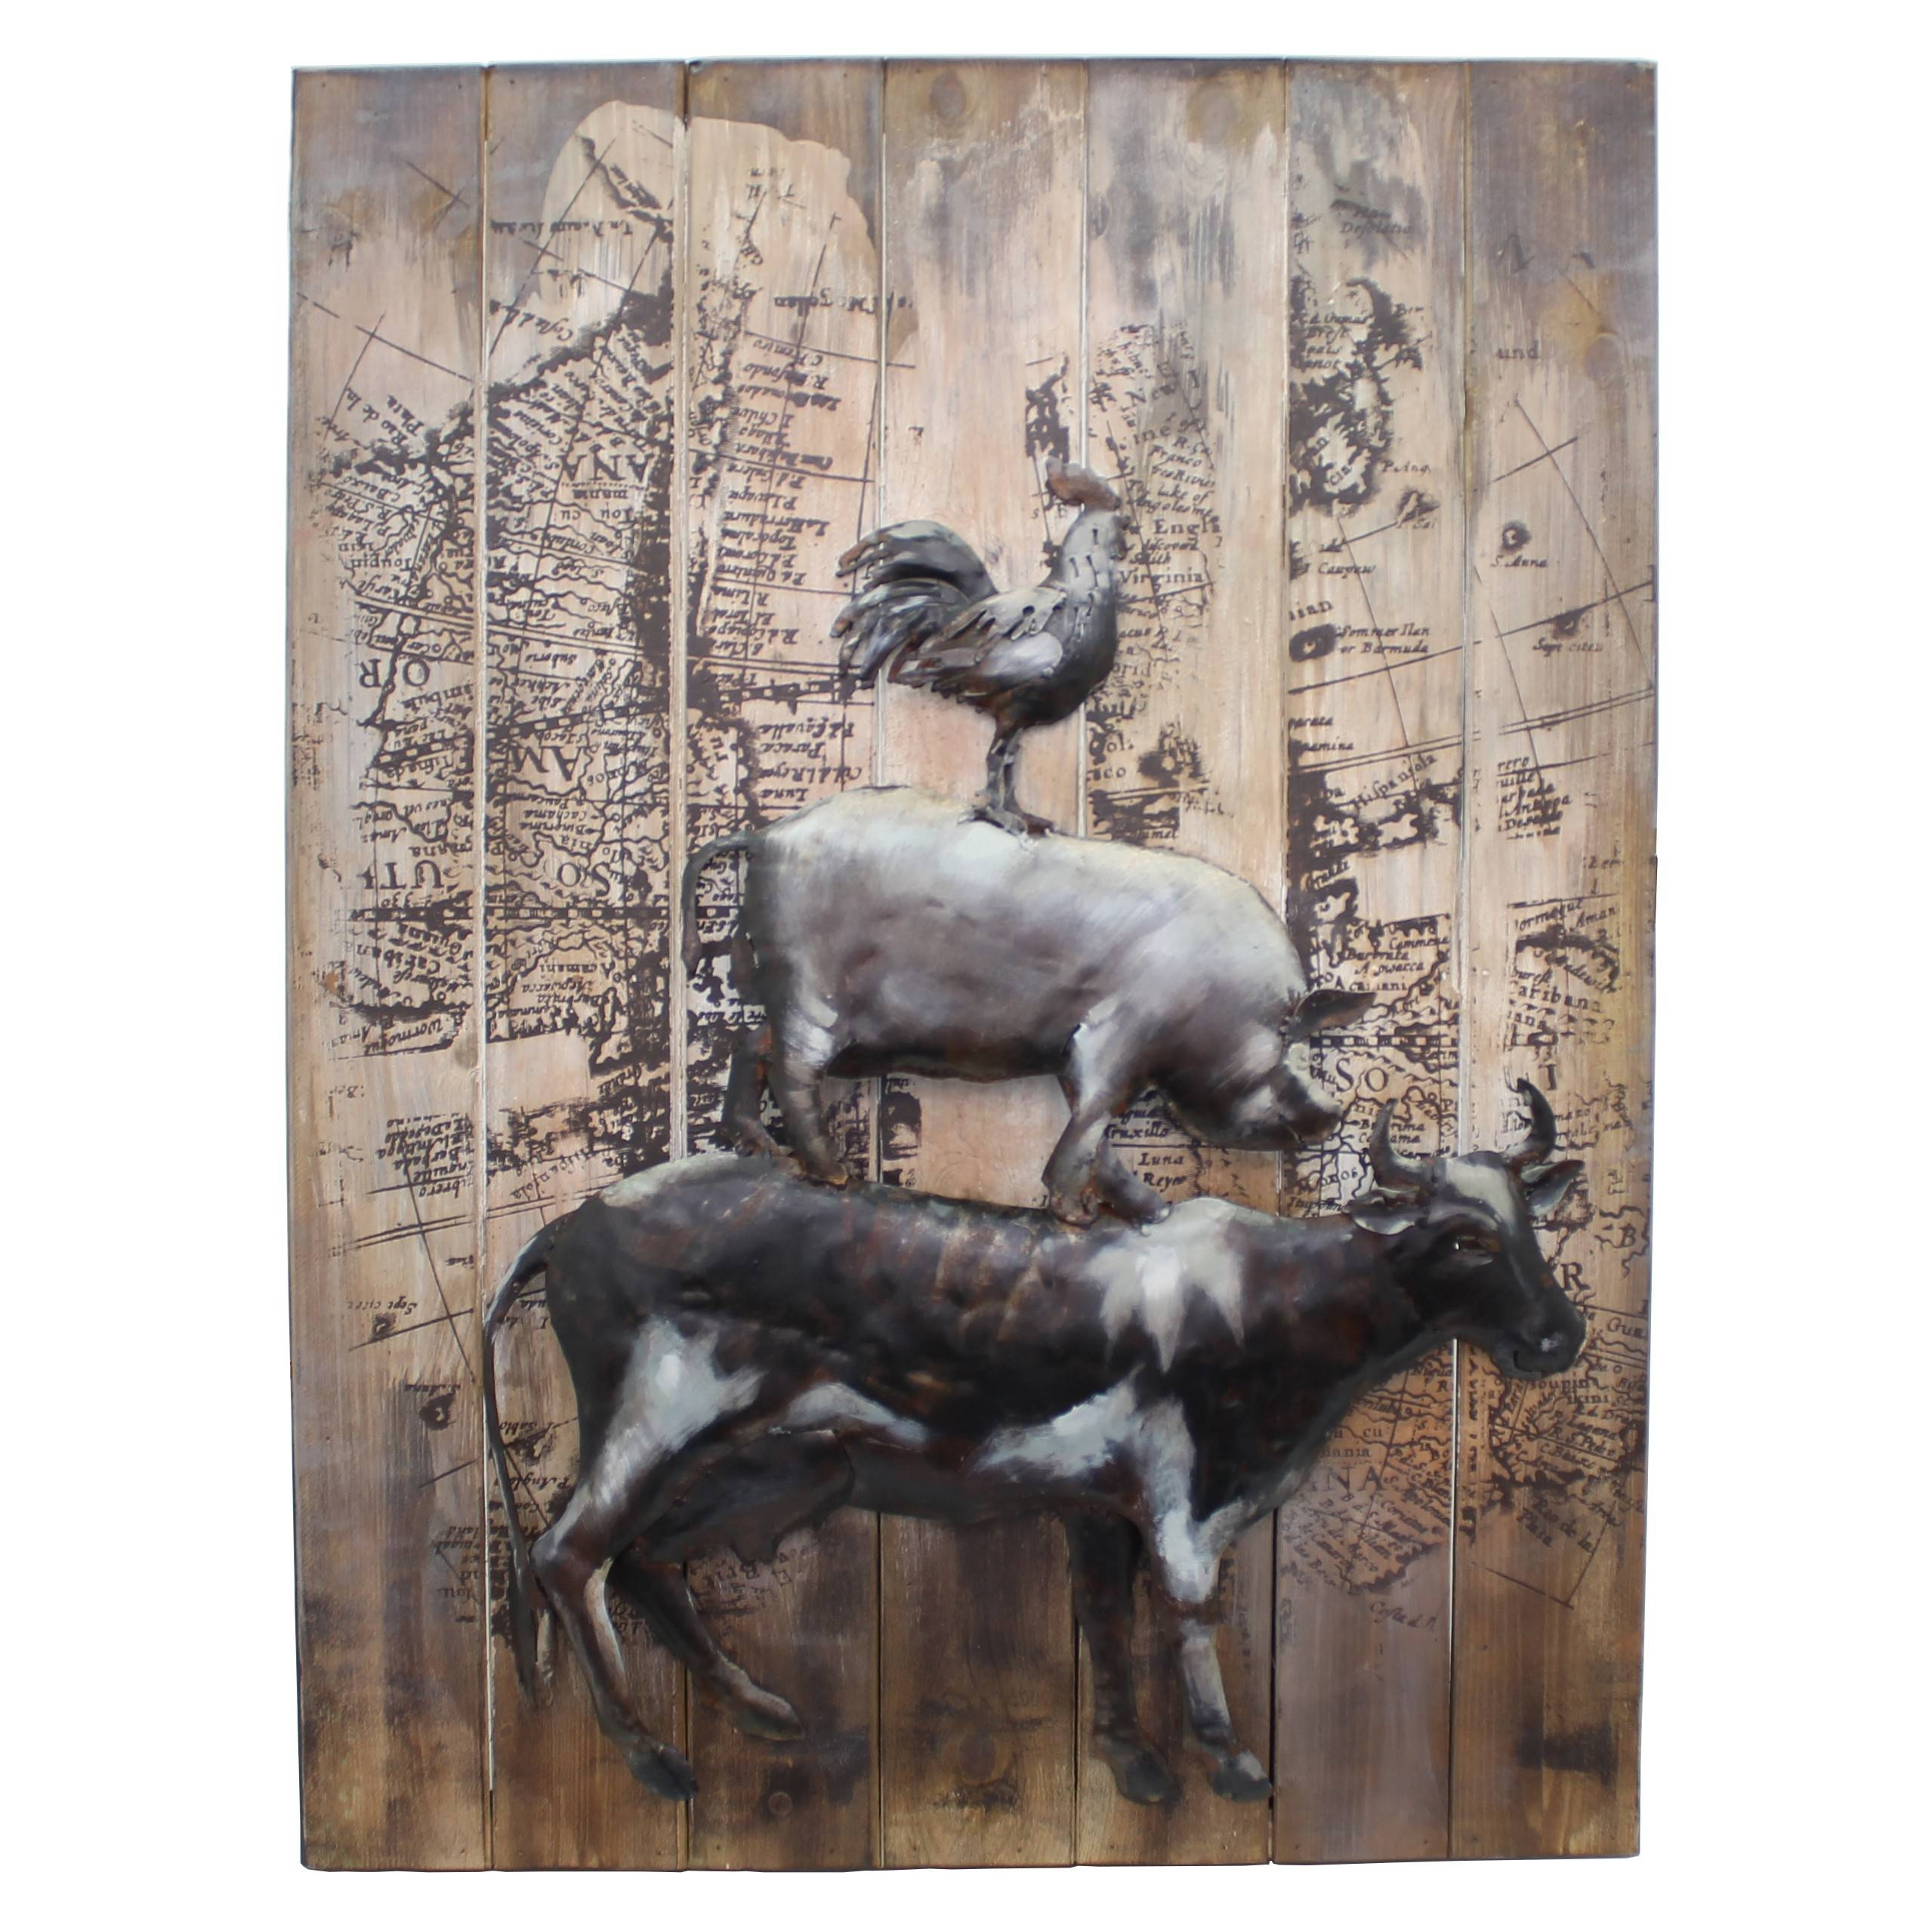 Piggyback' Farmyard Animals 3d Metal Wall Art – Home & Interiors Intended For Most Current Animals 3d Wall Art (View 16 of 20)